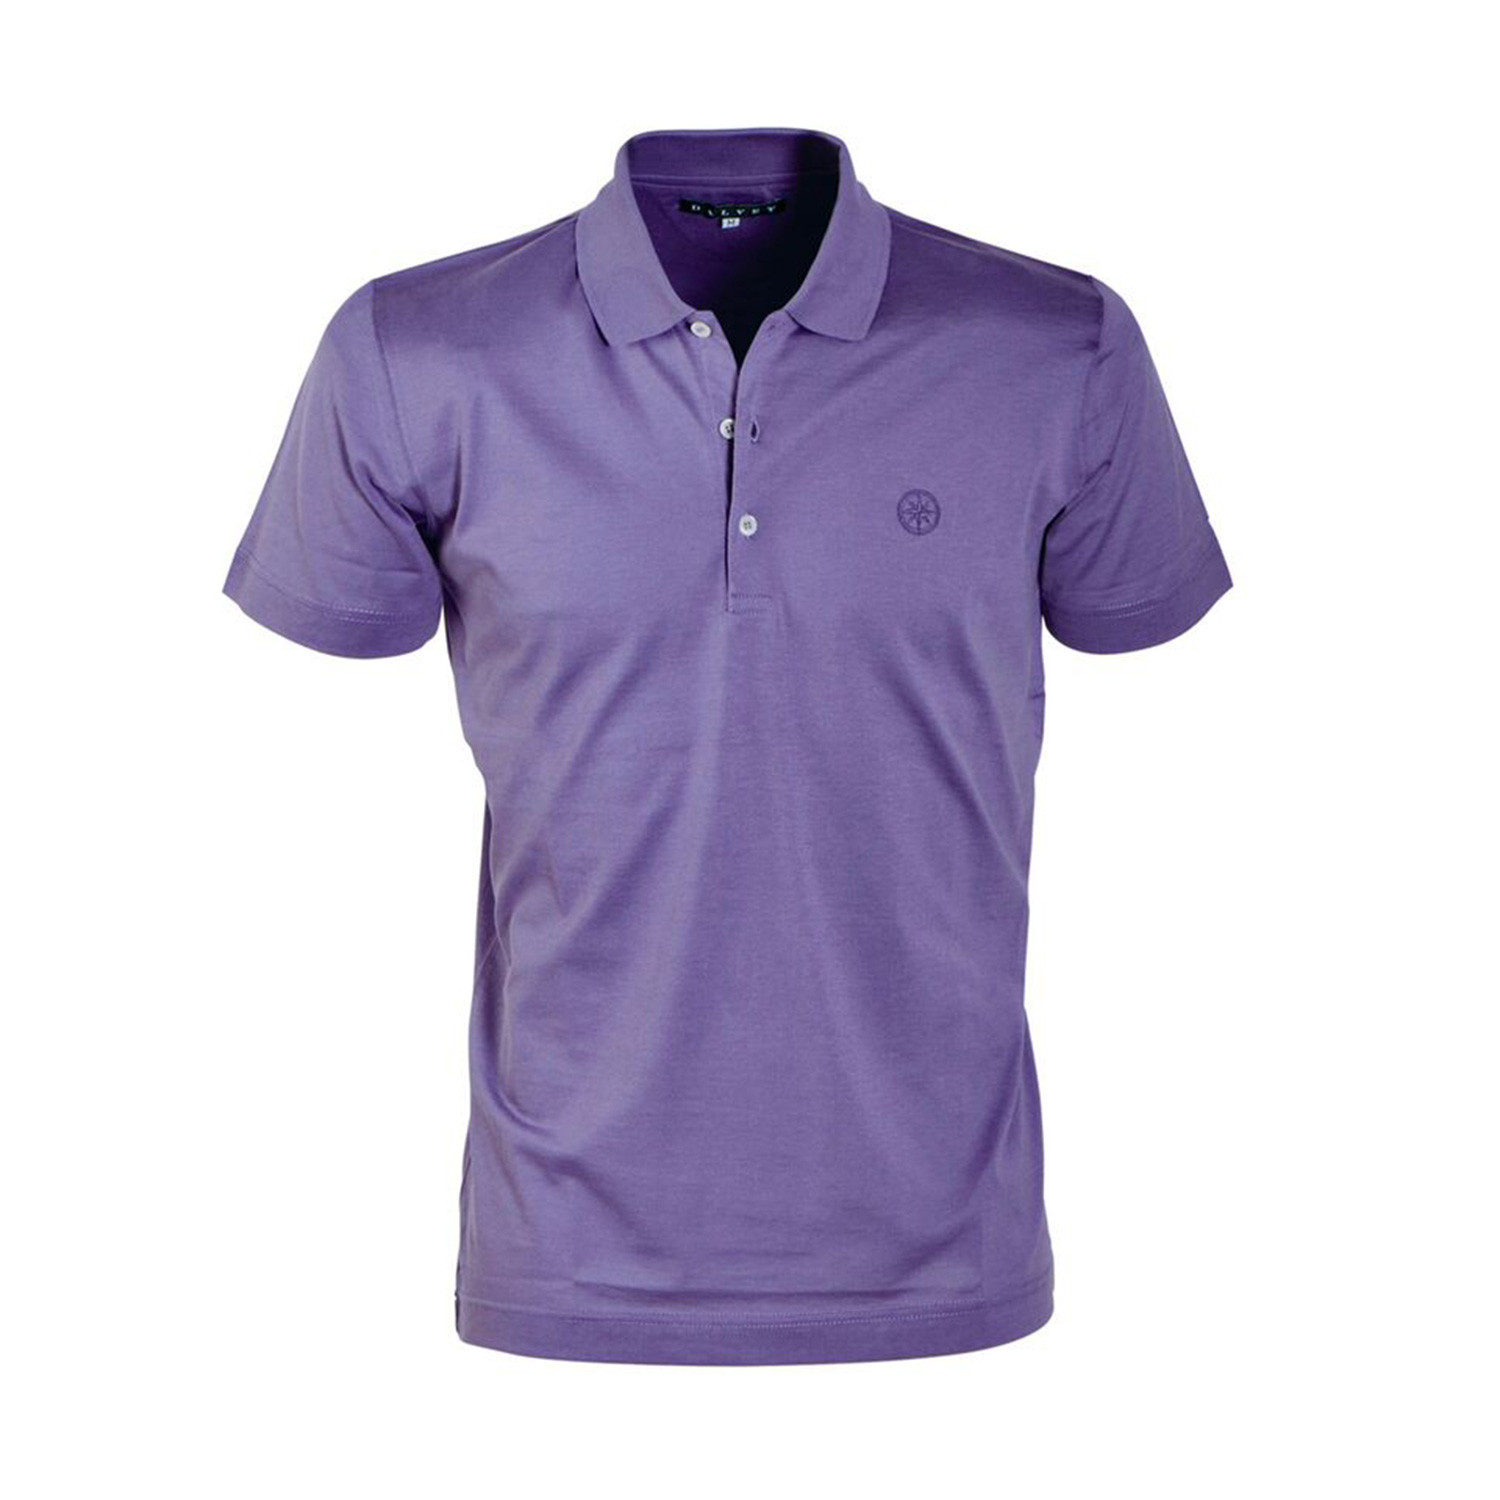 Jersey Knit Polo Shirt Violet S Dalvey Touch Of